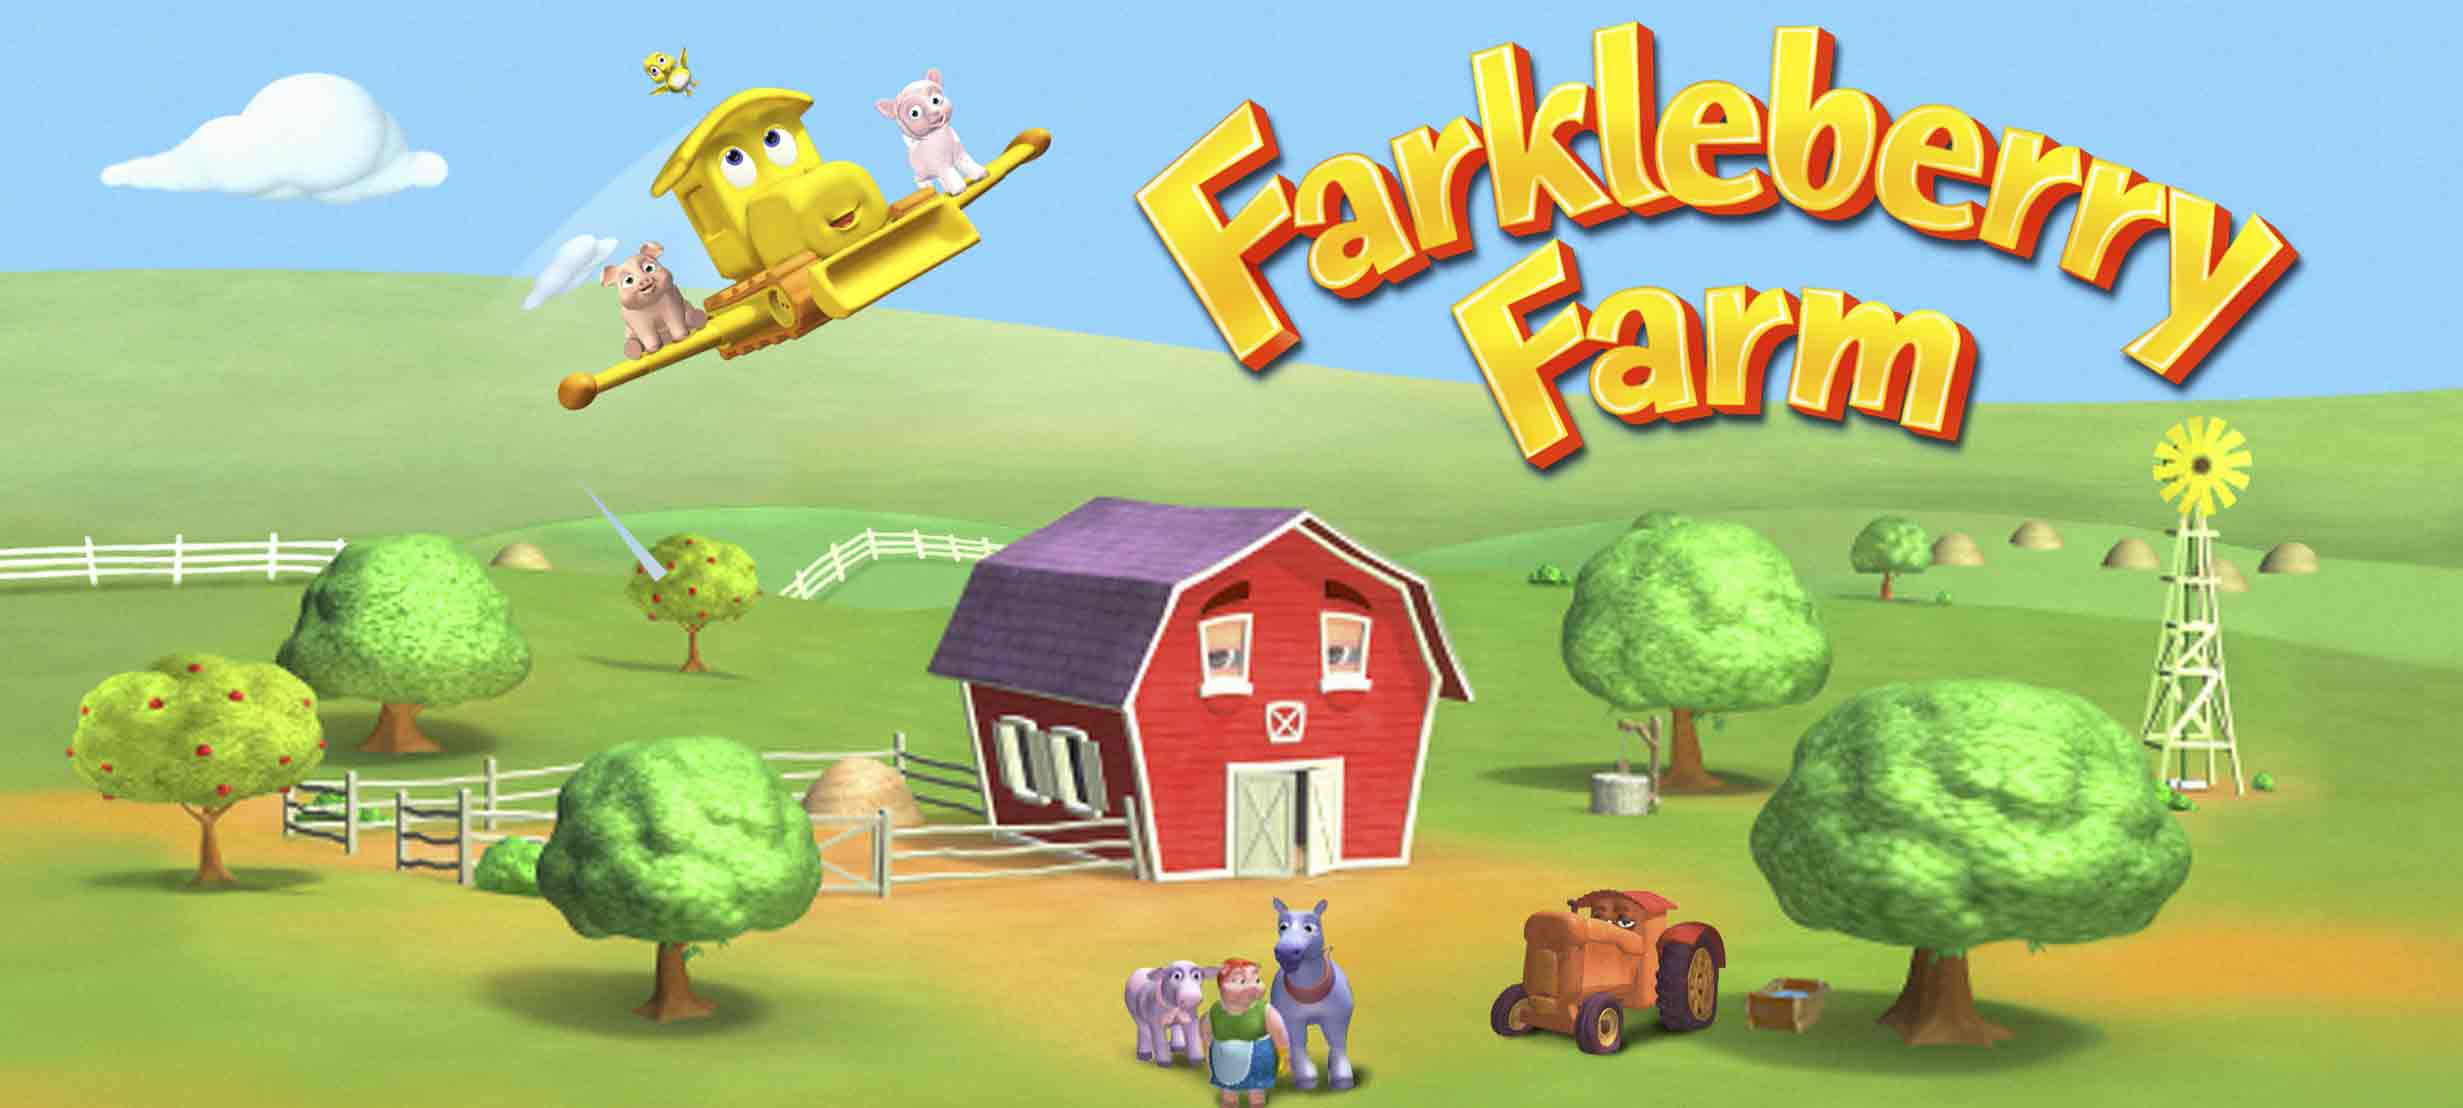 Farkelberry Farm: Part 2